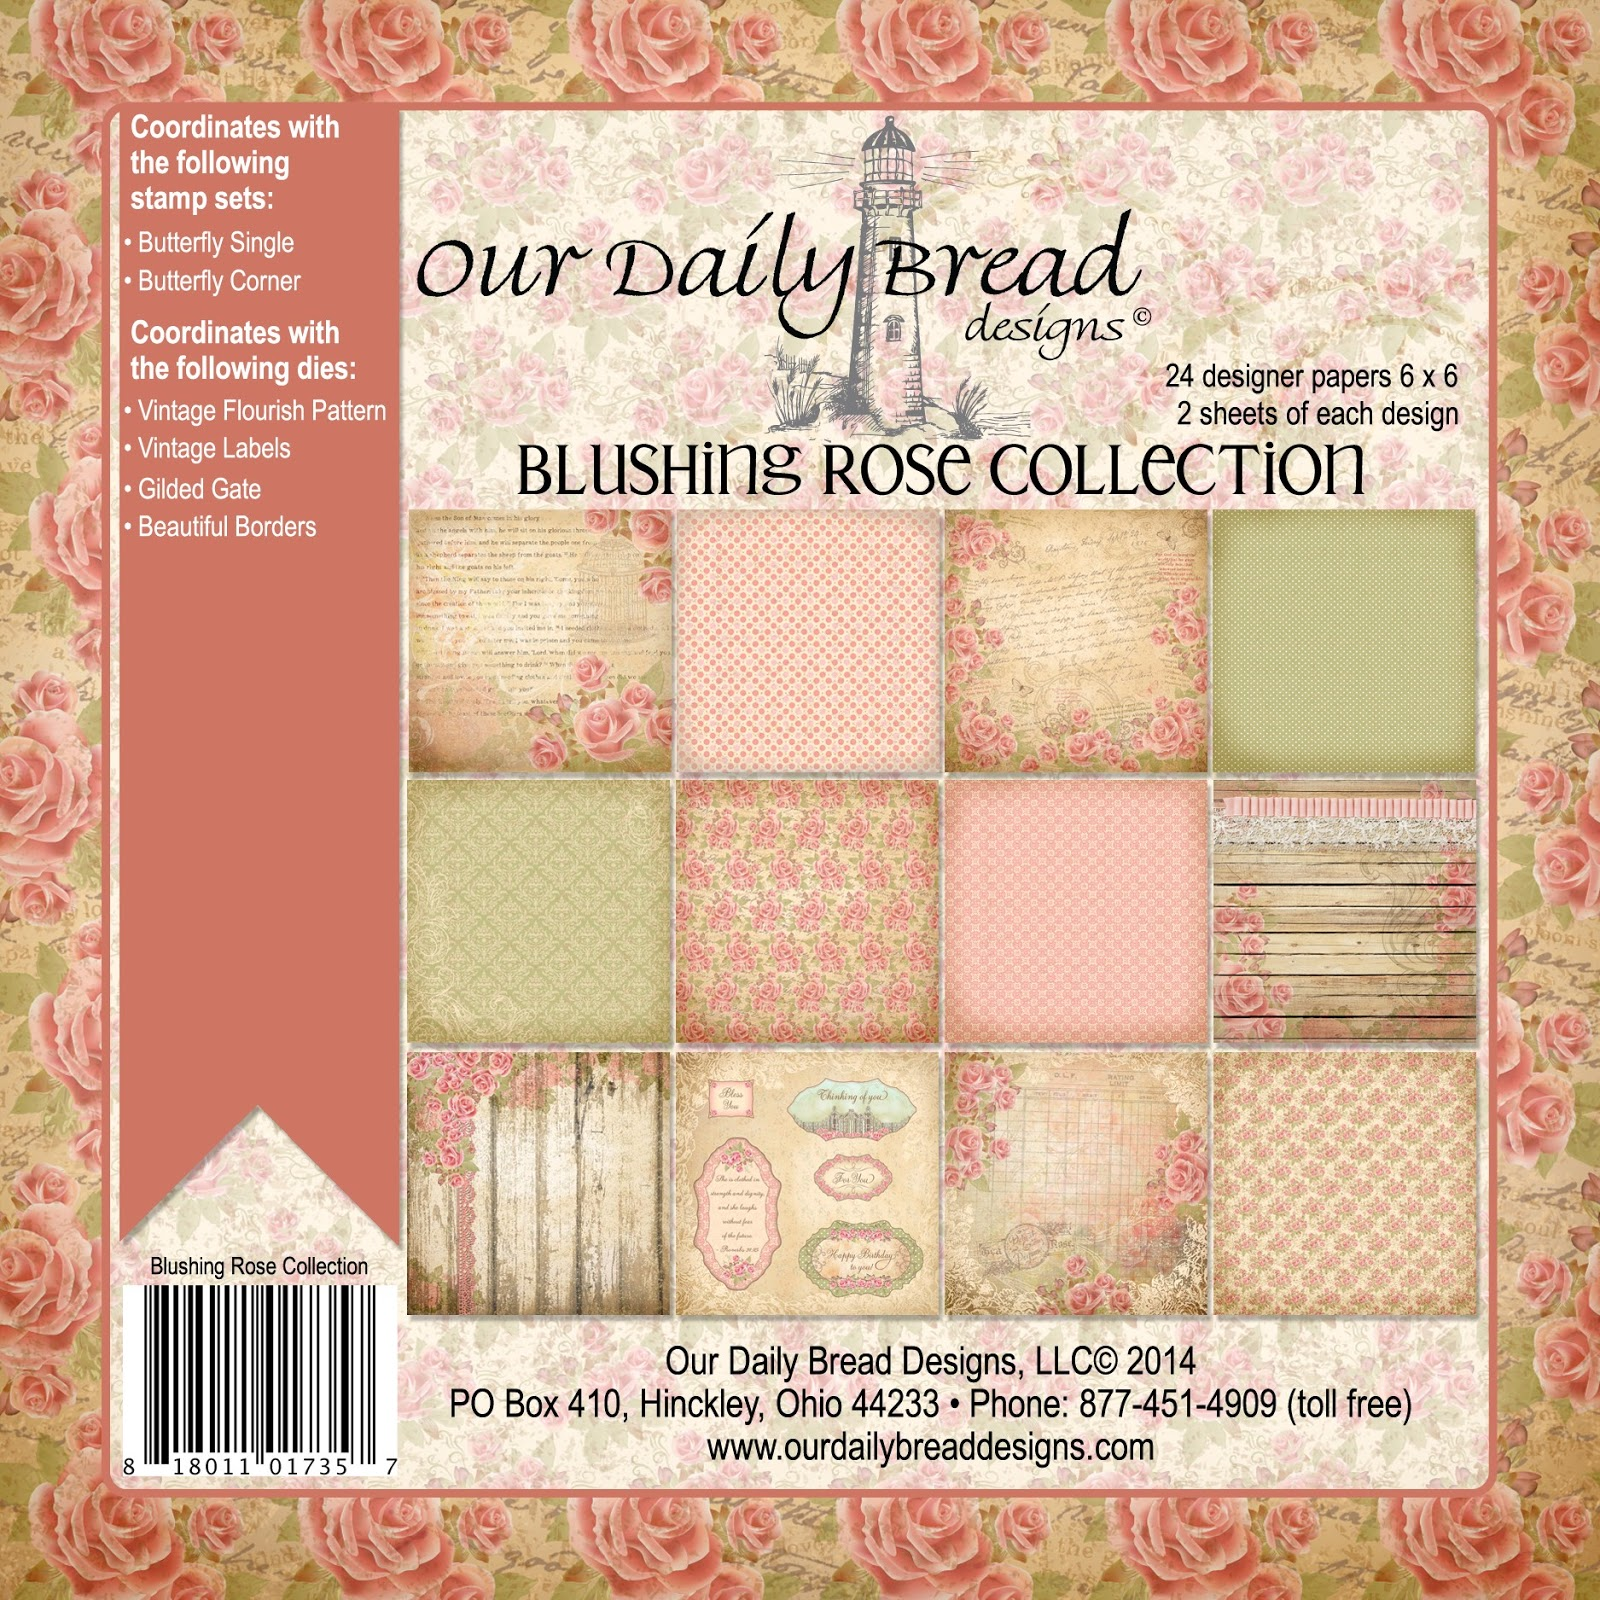 https://www.ourdailybreaddesigns.com/index.php/blushing-rose-collection-6x6-paper-pad.html